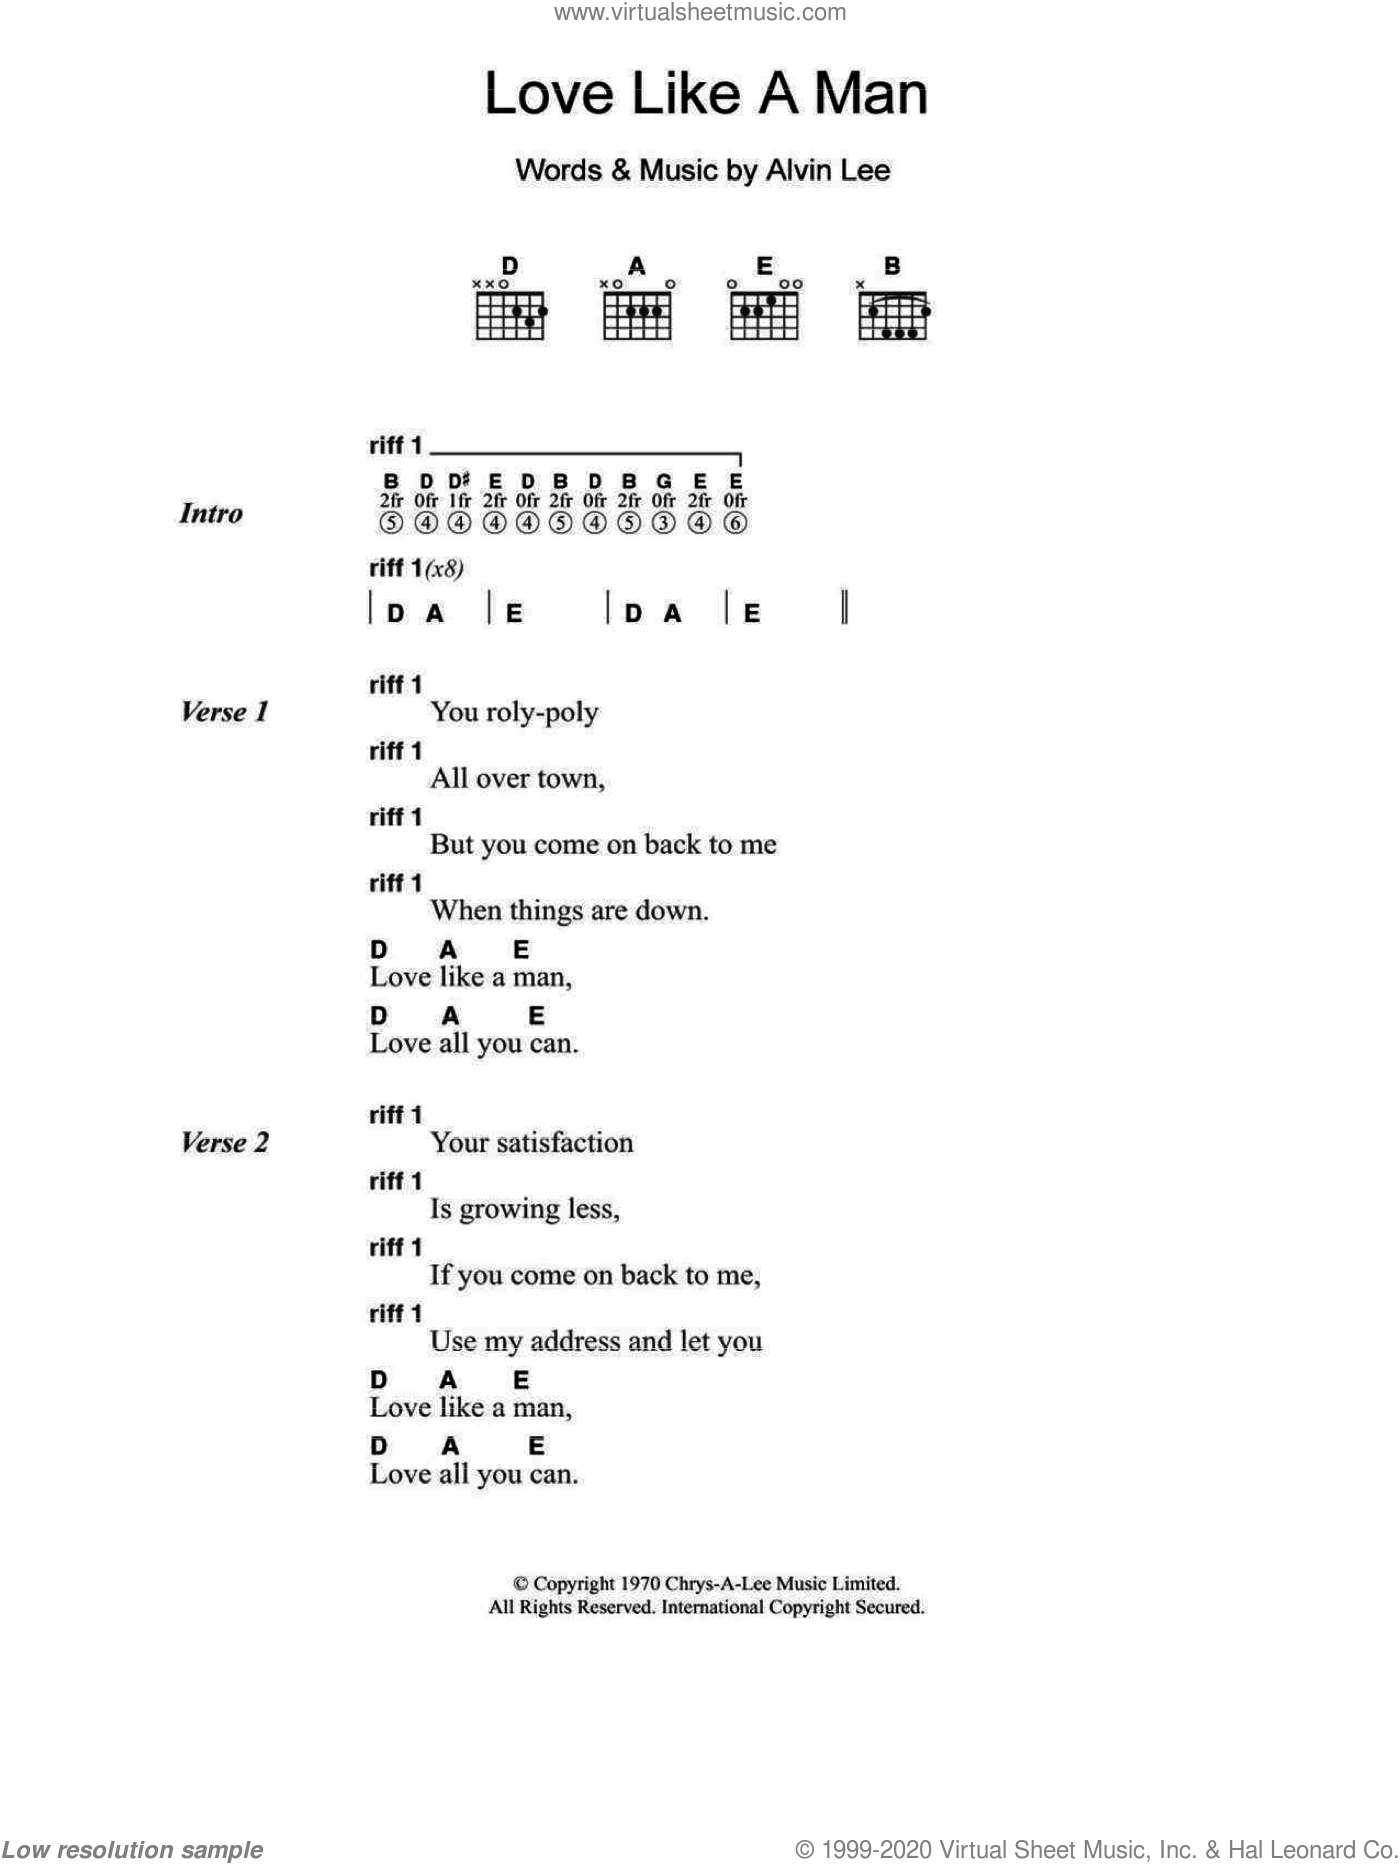 Love Like A Man sheet music for guitar (chords) by Alvin Lee